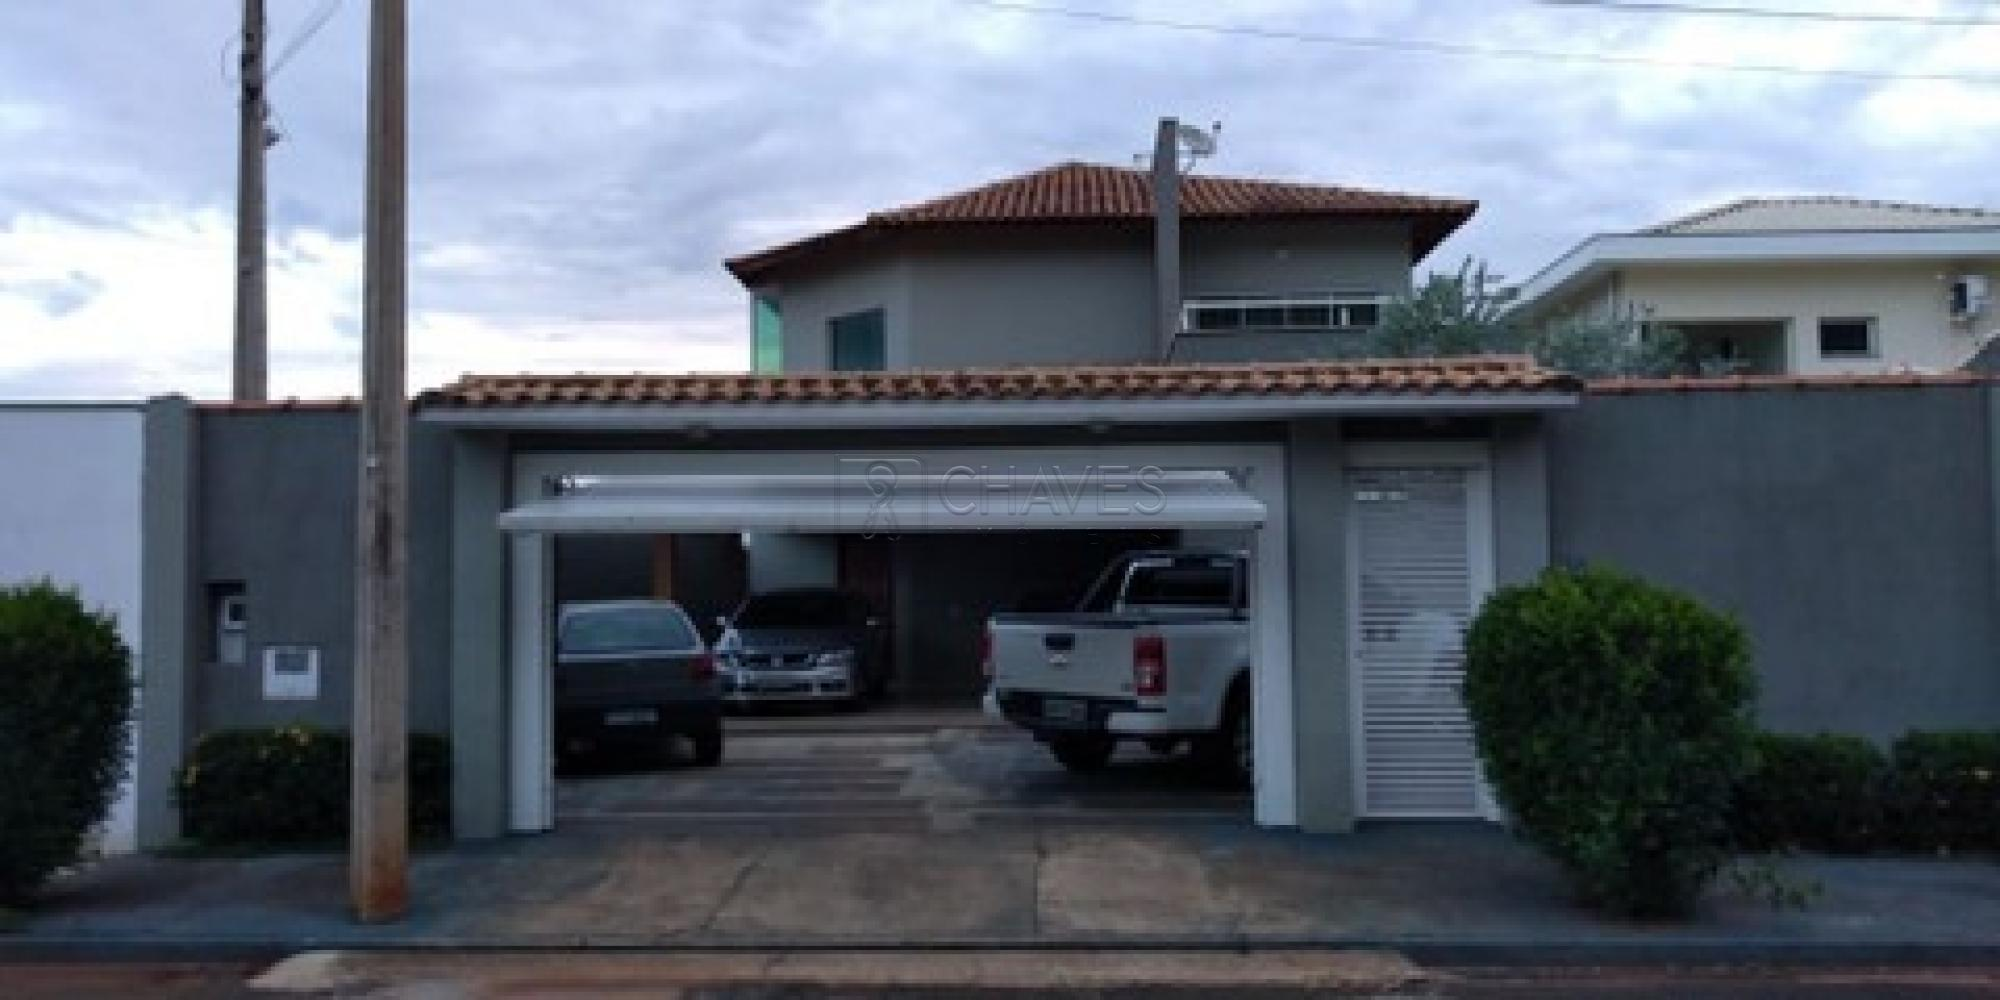 Ribeirao Preto Casa Venda R$850.000,00 3 Dormitorios 2 Suites Area do terreno 400.00m2 Area construida 200.00m2